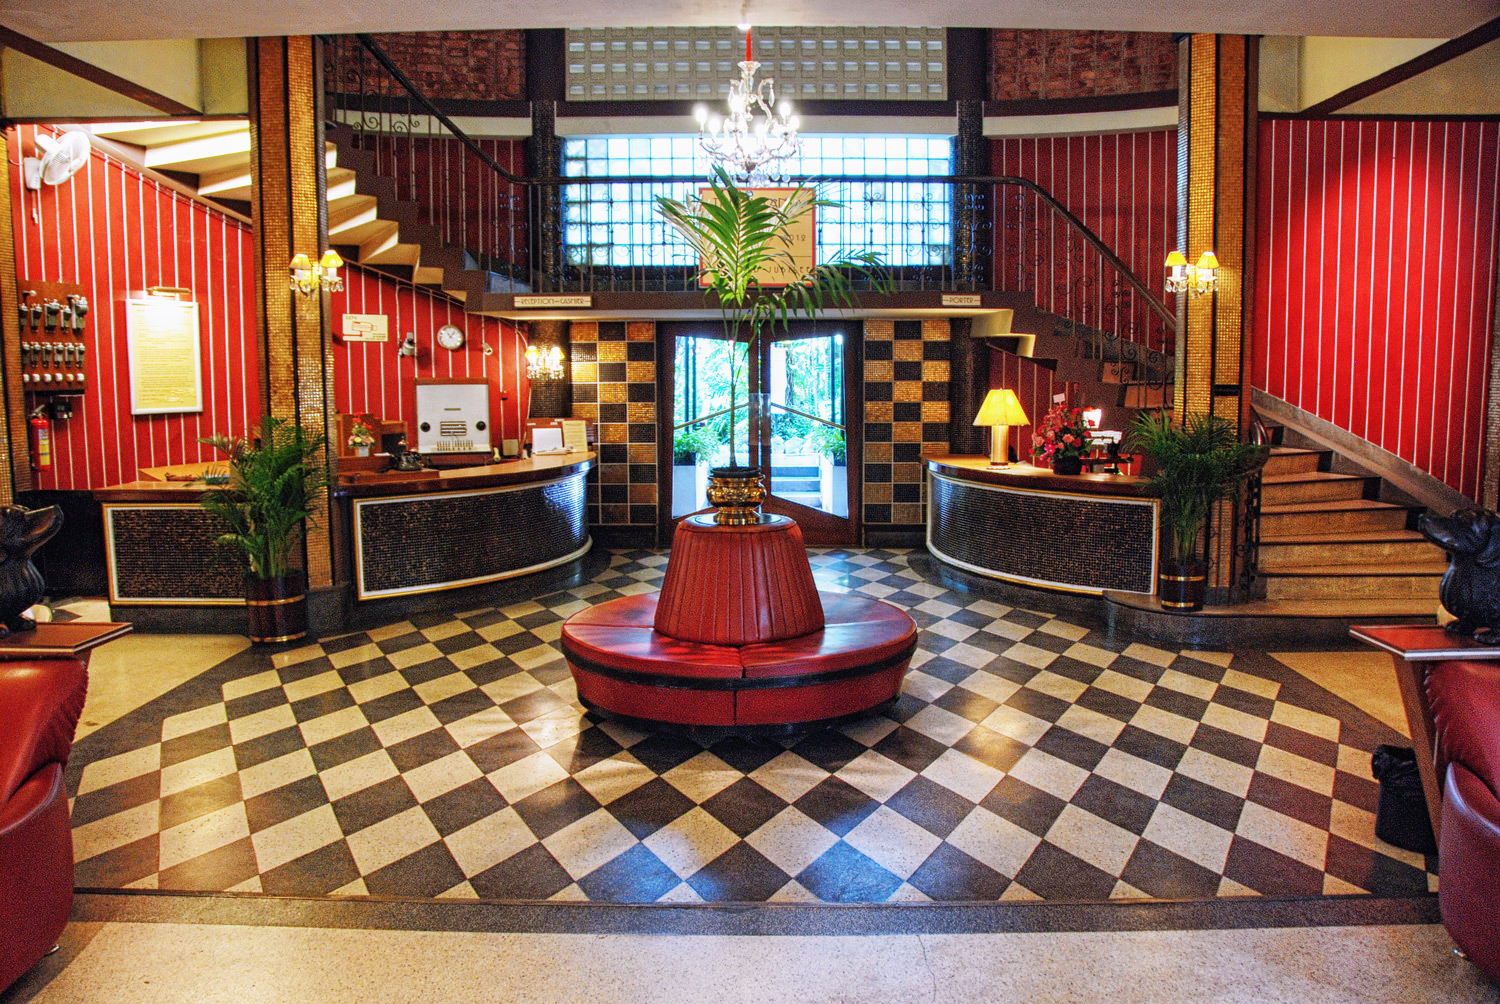 An Ode to the Atlanta Hotel, Bangkok